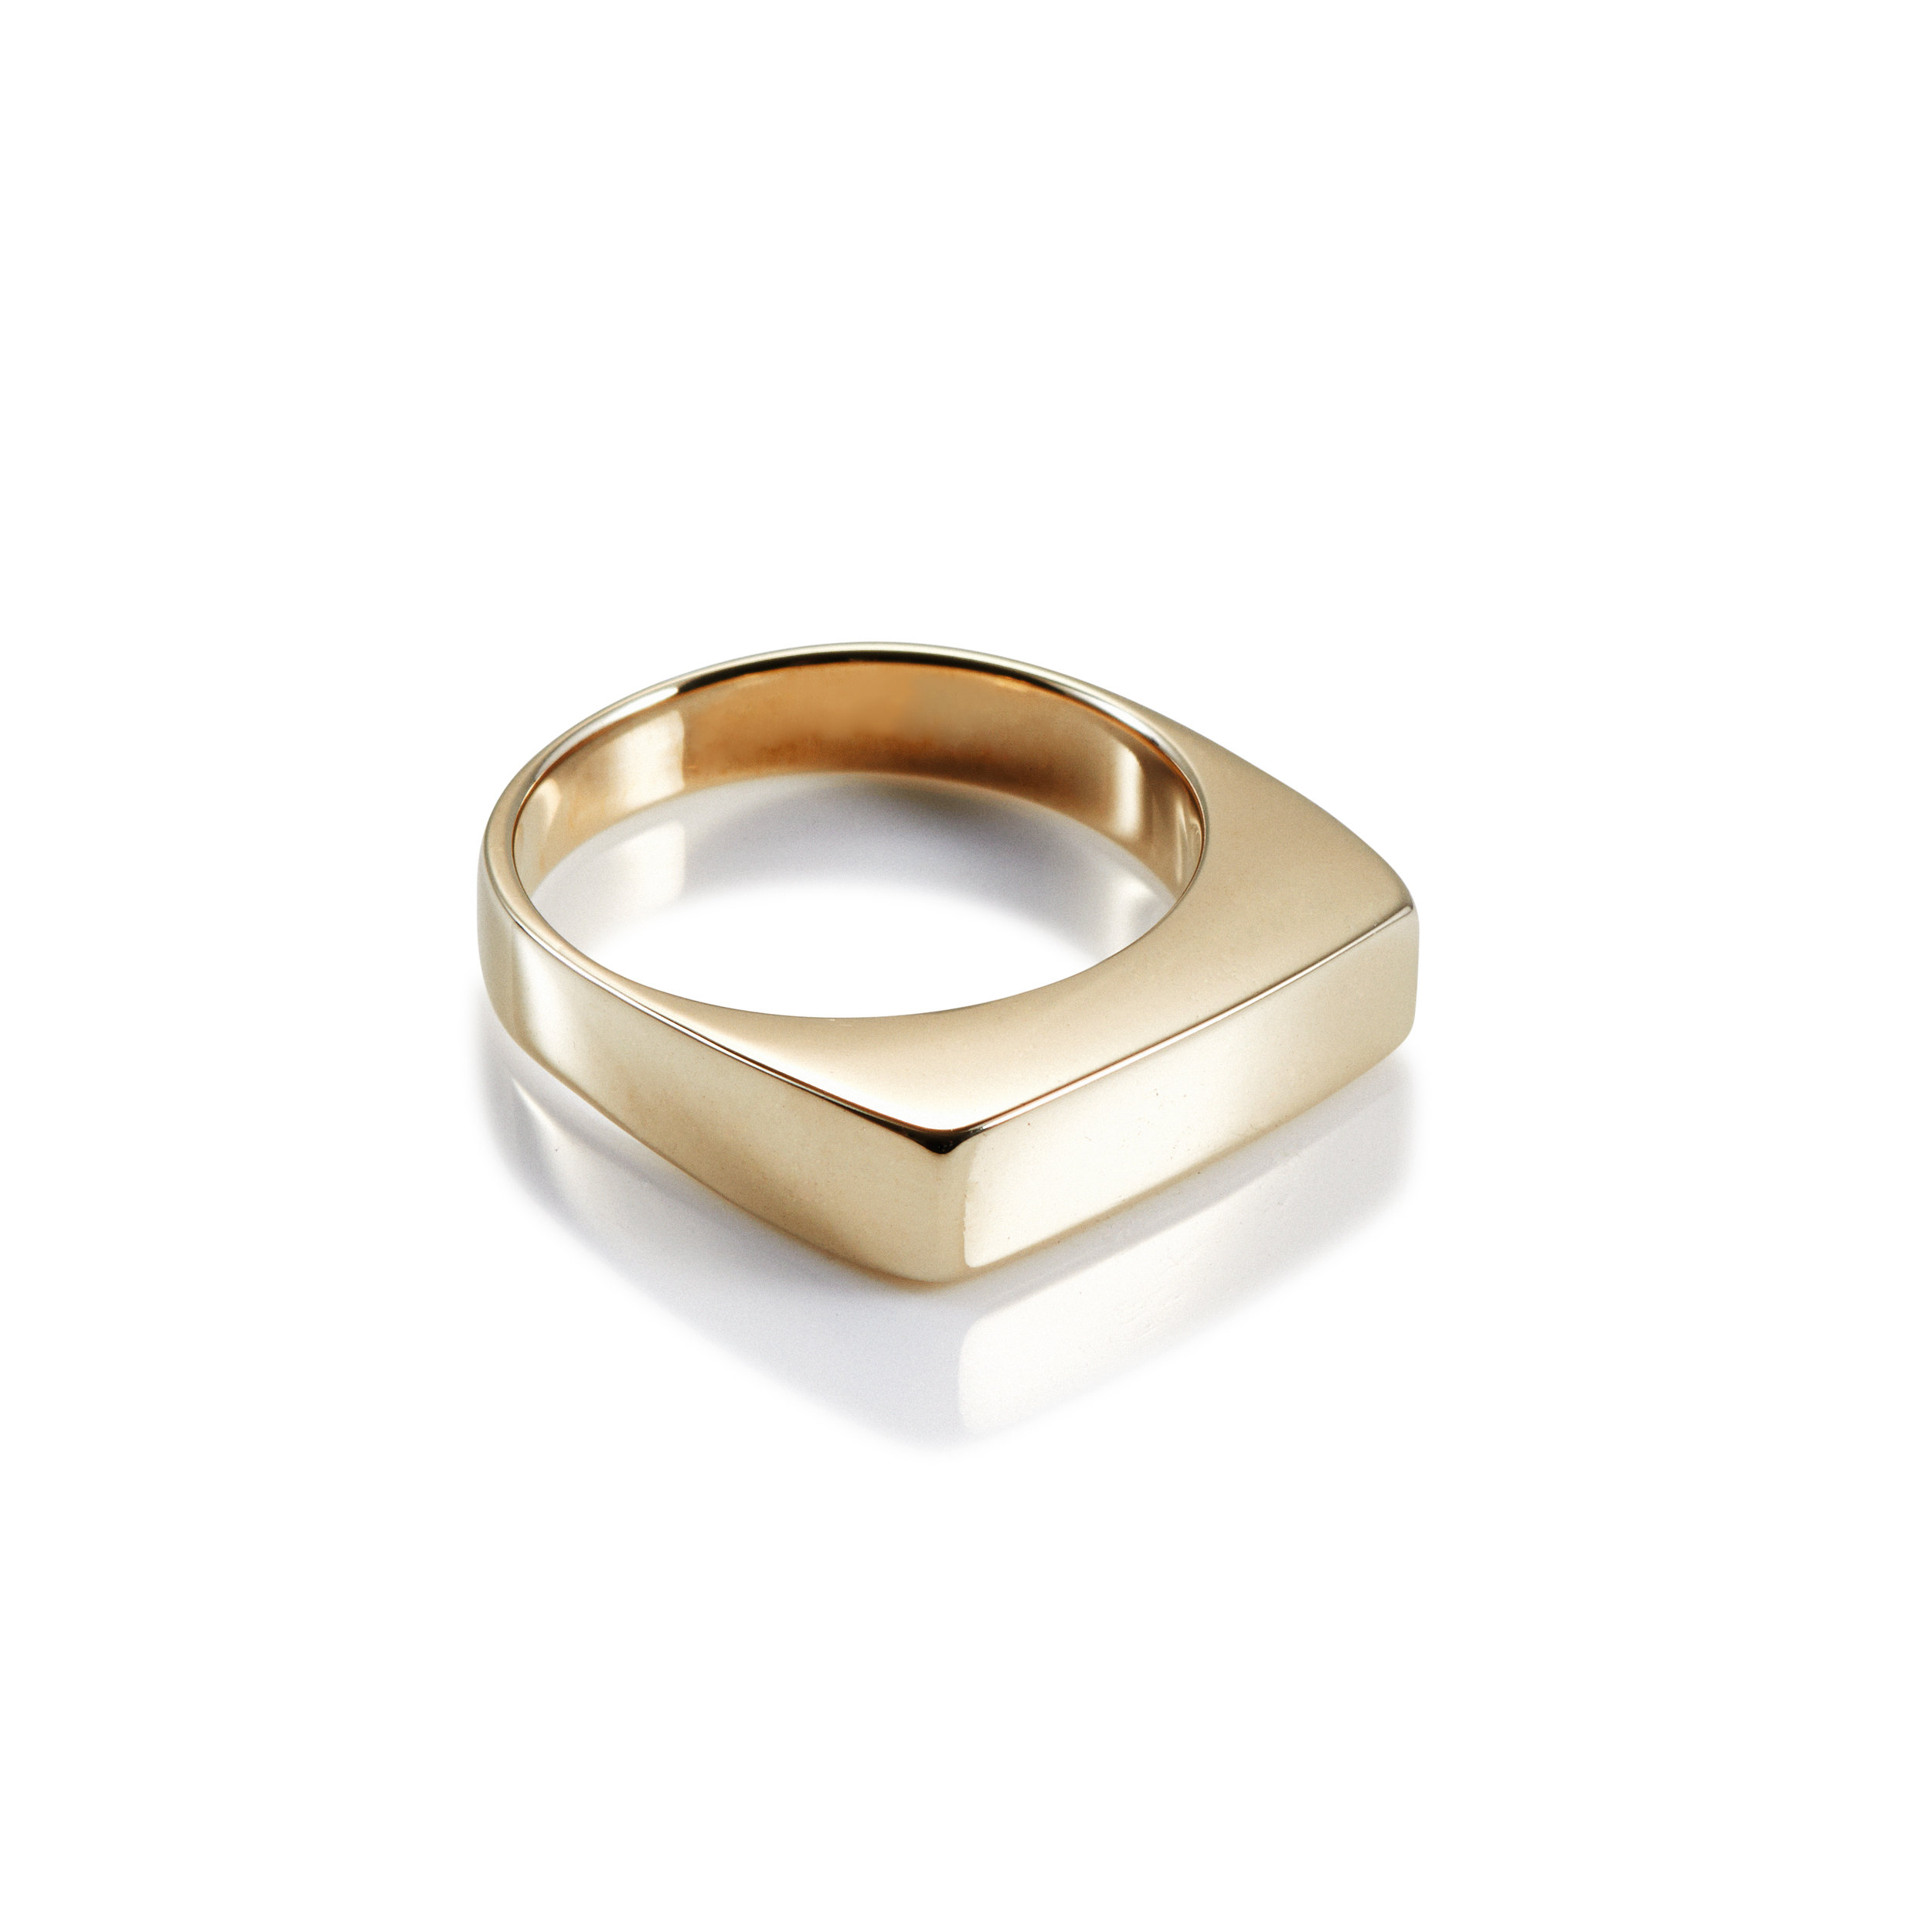 Little Flat Top Ring Charlotte Cauwe